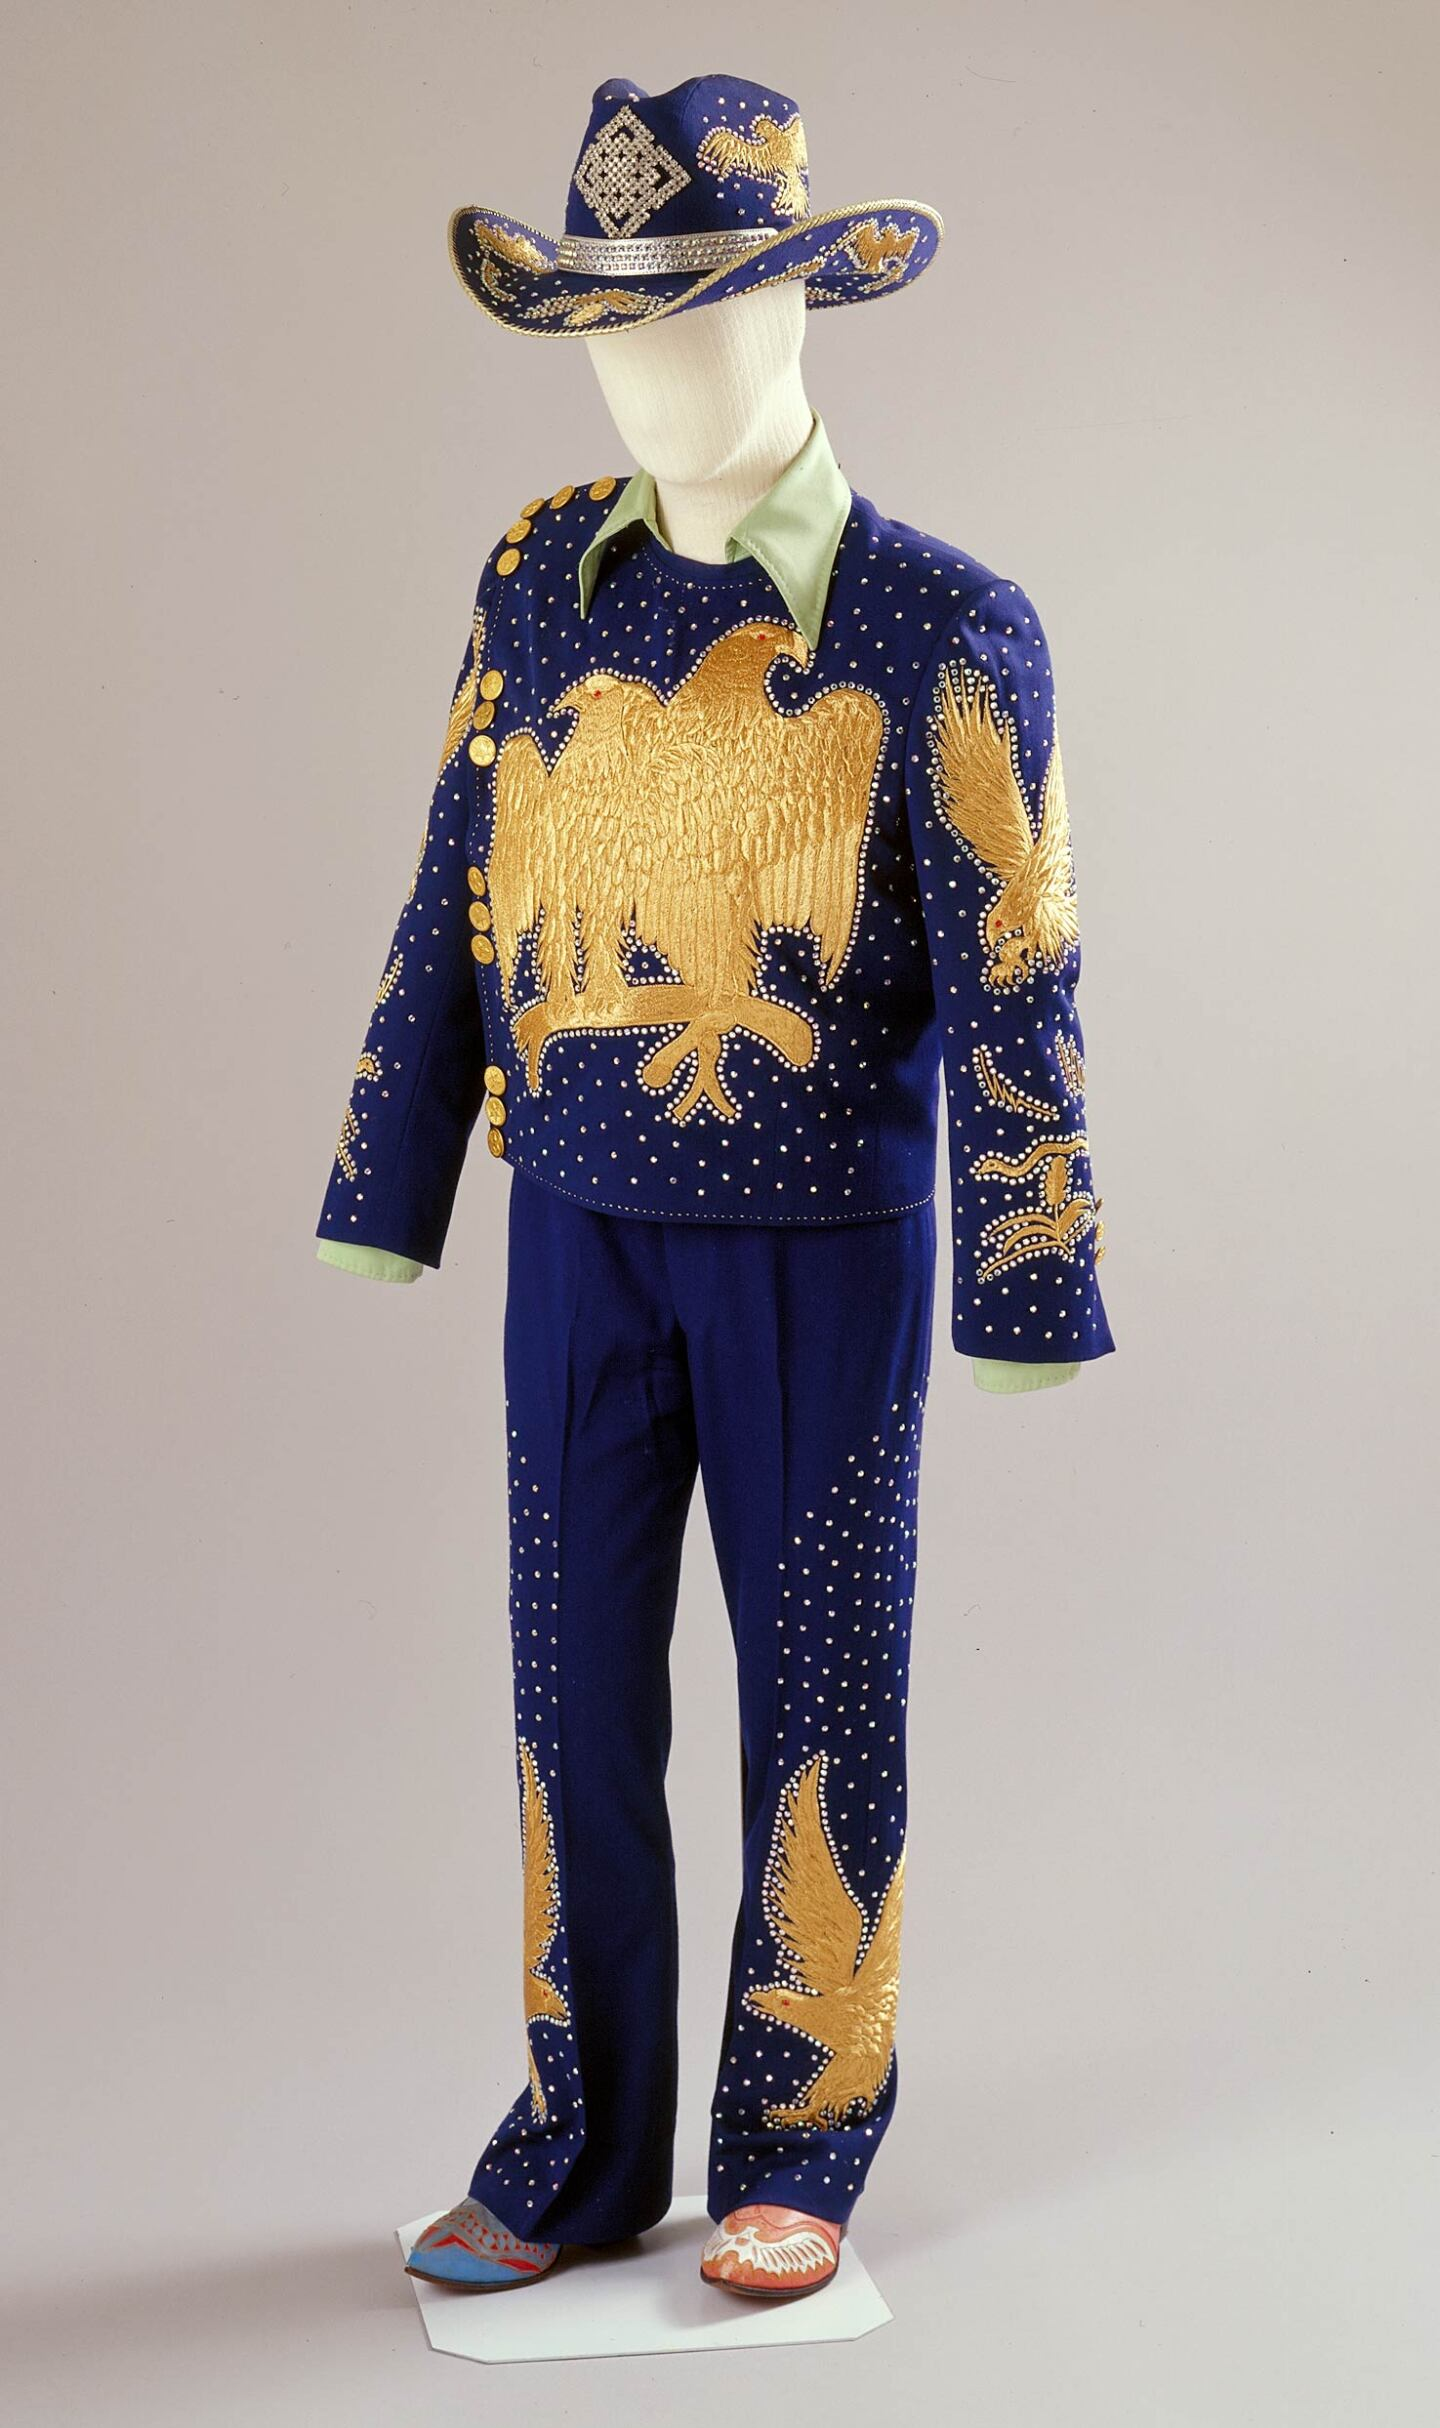 Nudie's outfit with rhinstones and embroidery along with his mismatched boots | Courtesy of the Autry Museum of the American West